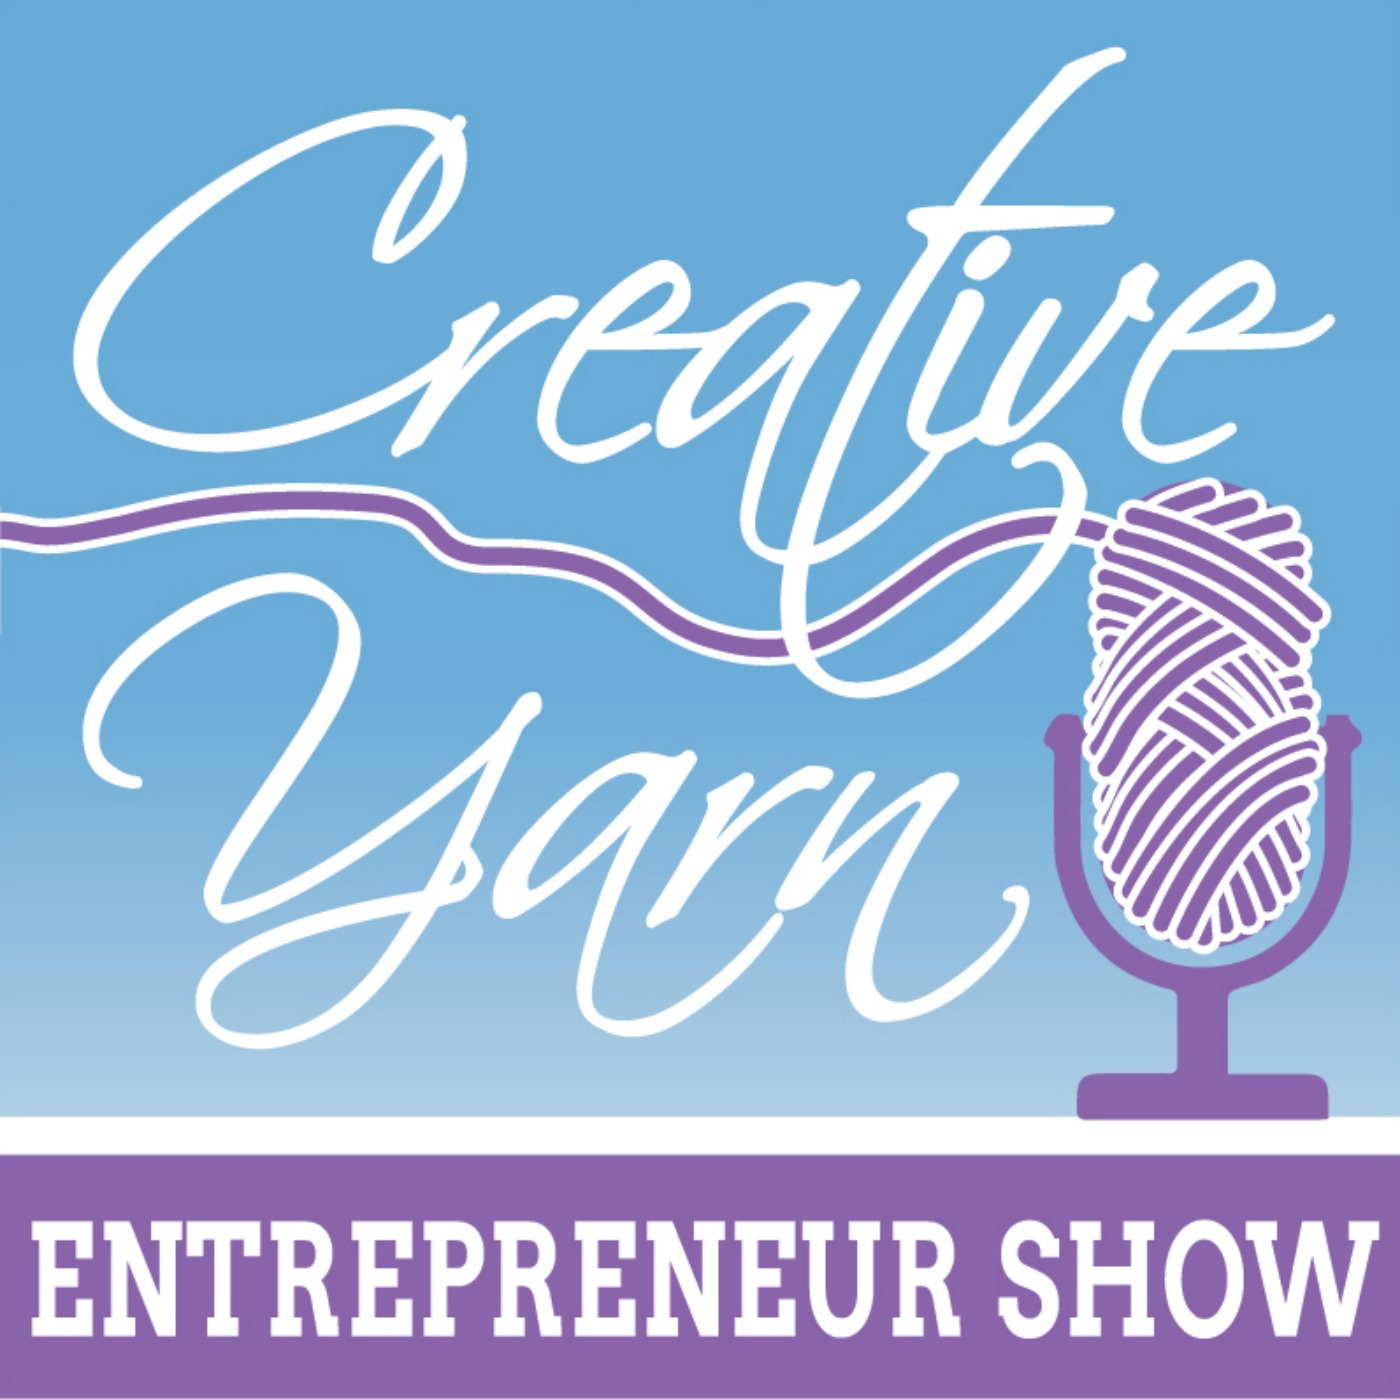 Episode 33: 7 Steps for Pitching Your Ideas for Workshops, Presentations, and Panel Sessions to Conferences and Events - The Creative Yarn Entrepreneur Show